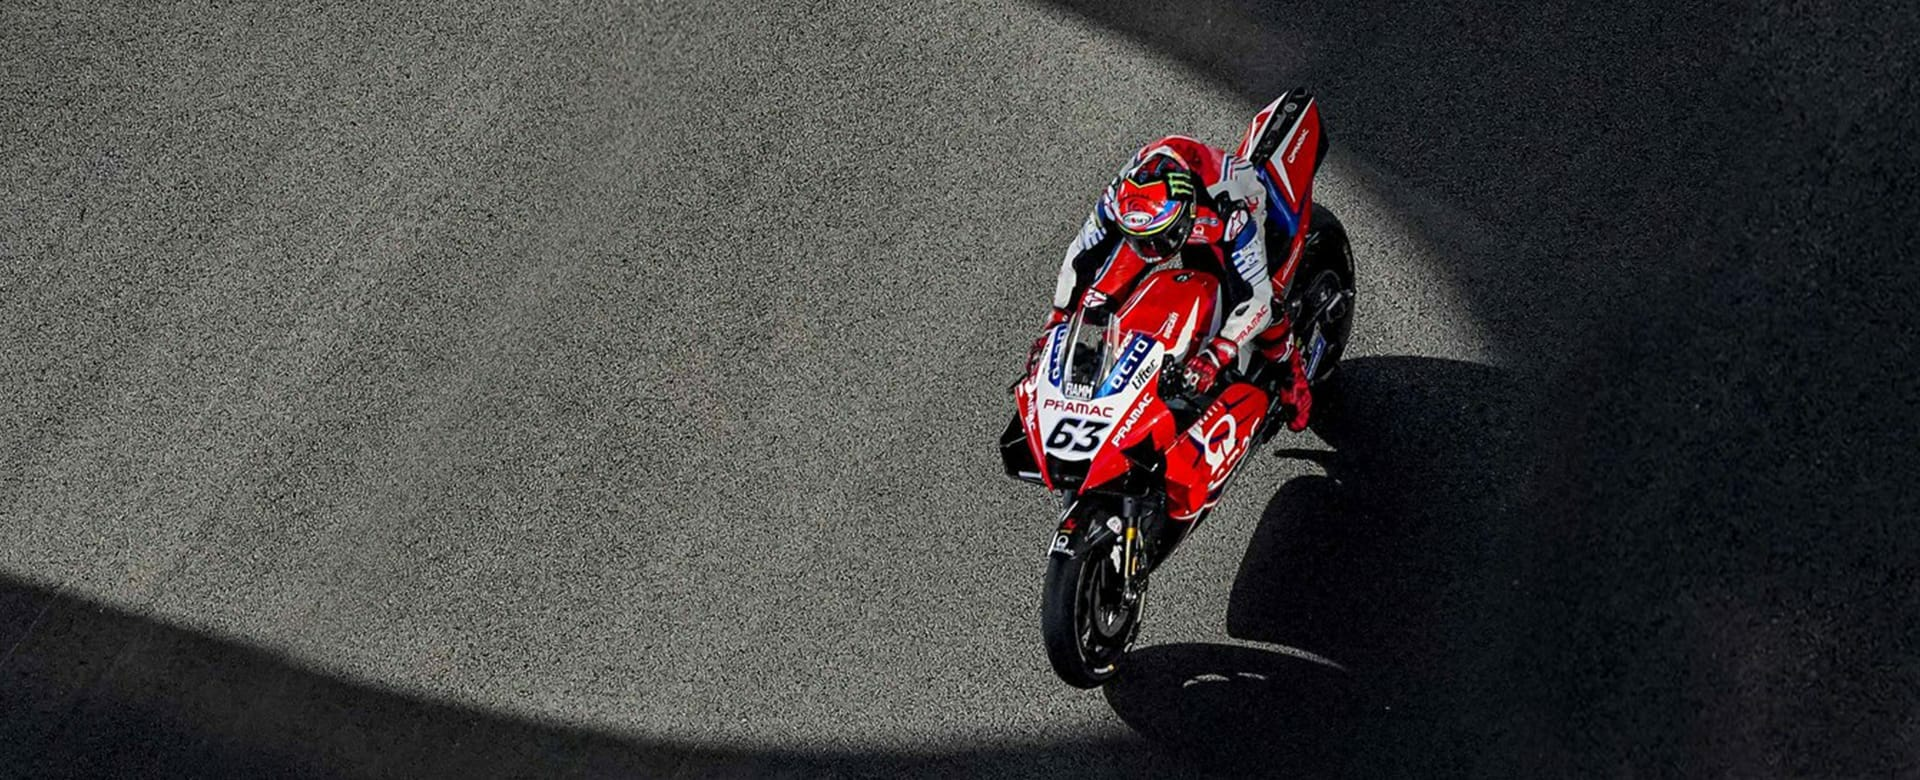 Athletes_WD40-Ducati-Banner